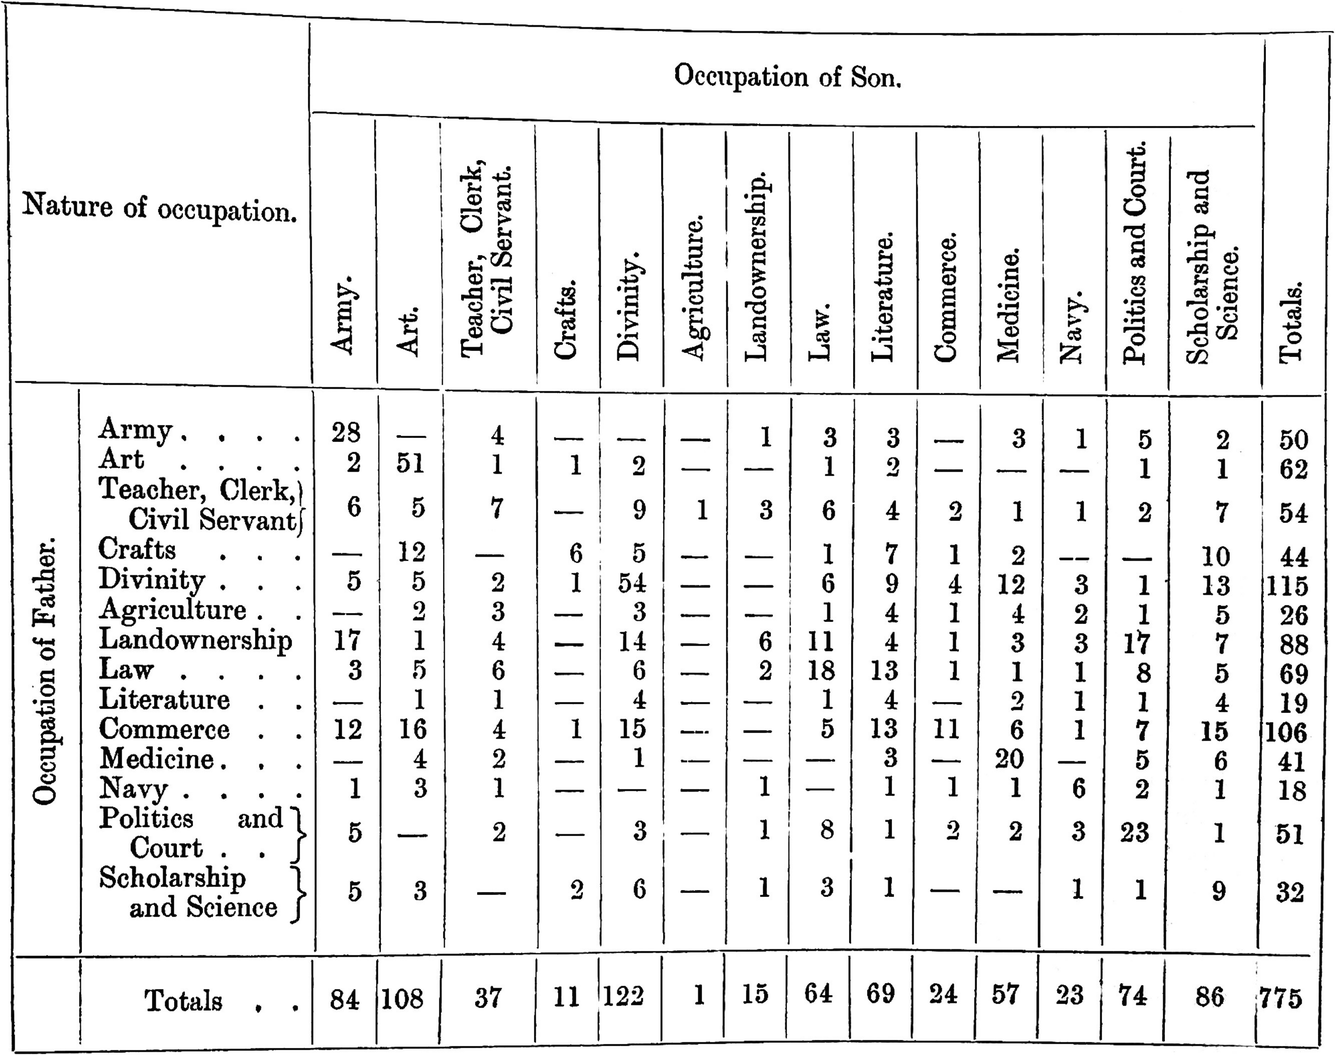 Sociology and Statistics in Britain: The Strange History of